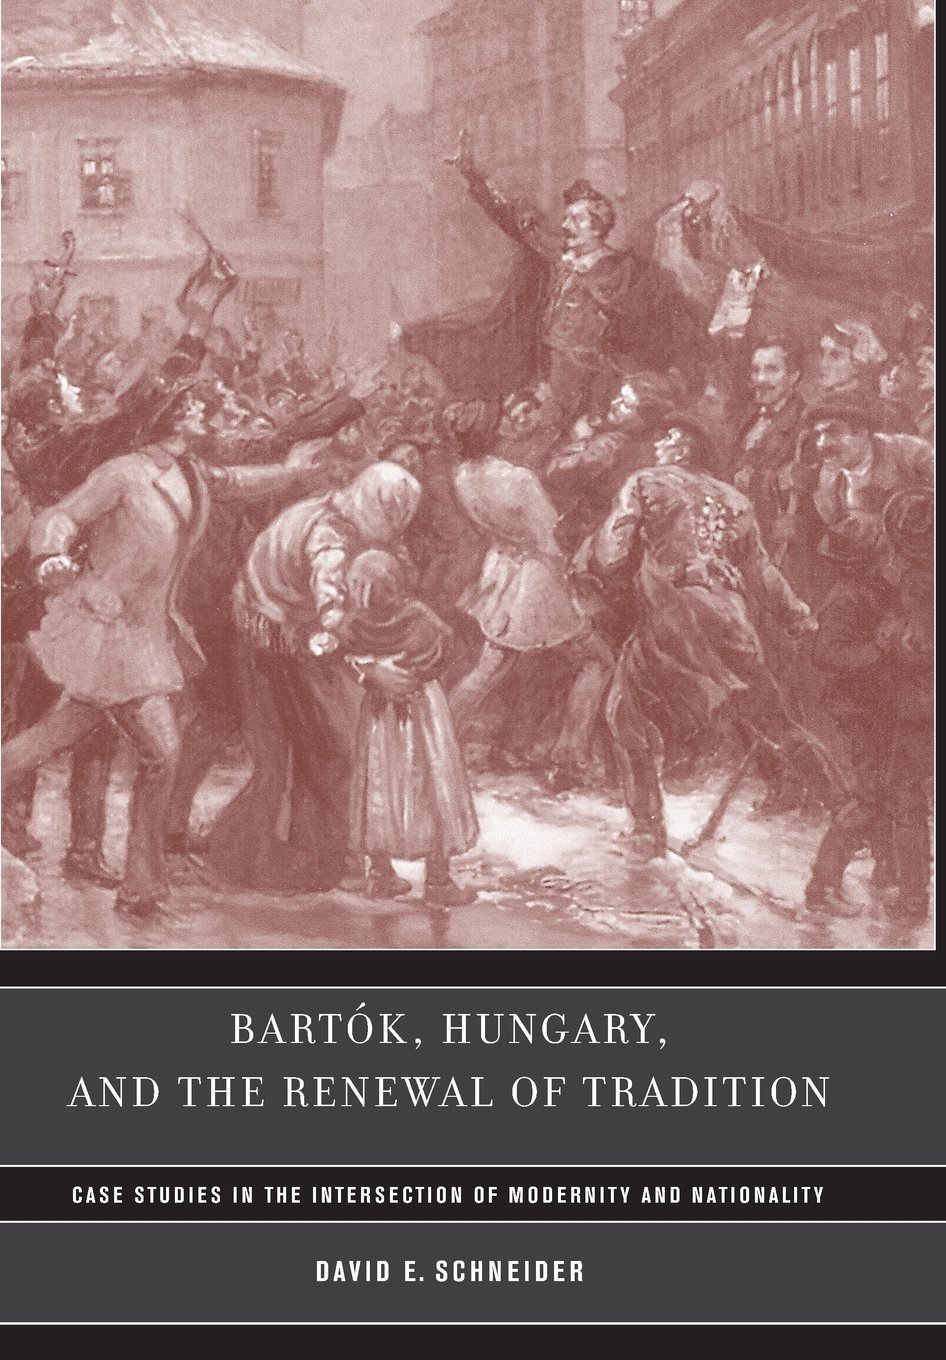 Bartók, Hungary, and the Renewal of Tradition: Case Studies in the Intersection of Modernity and Nationality pdf